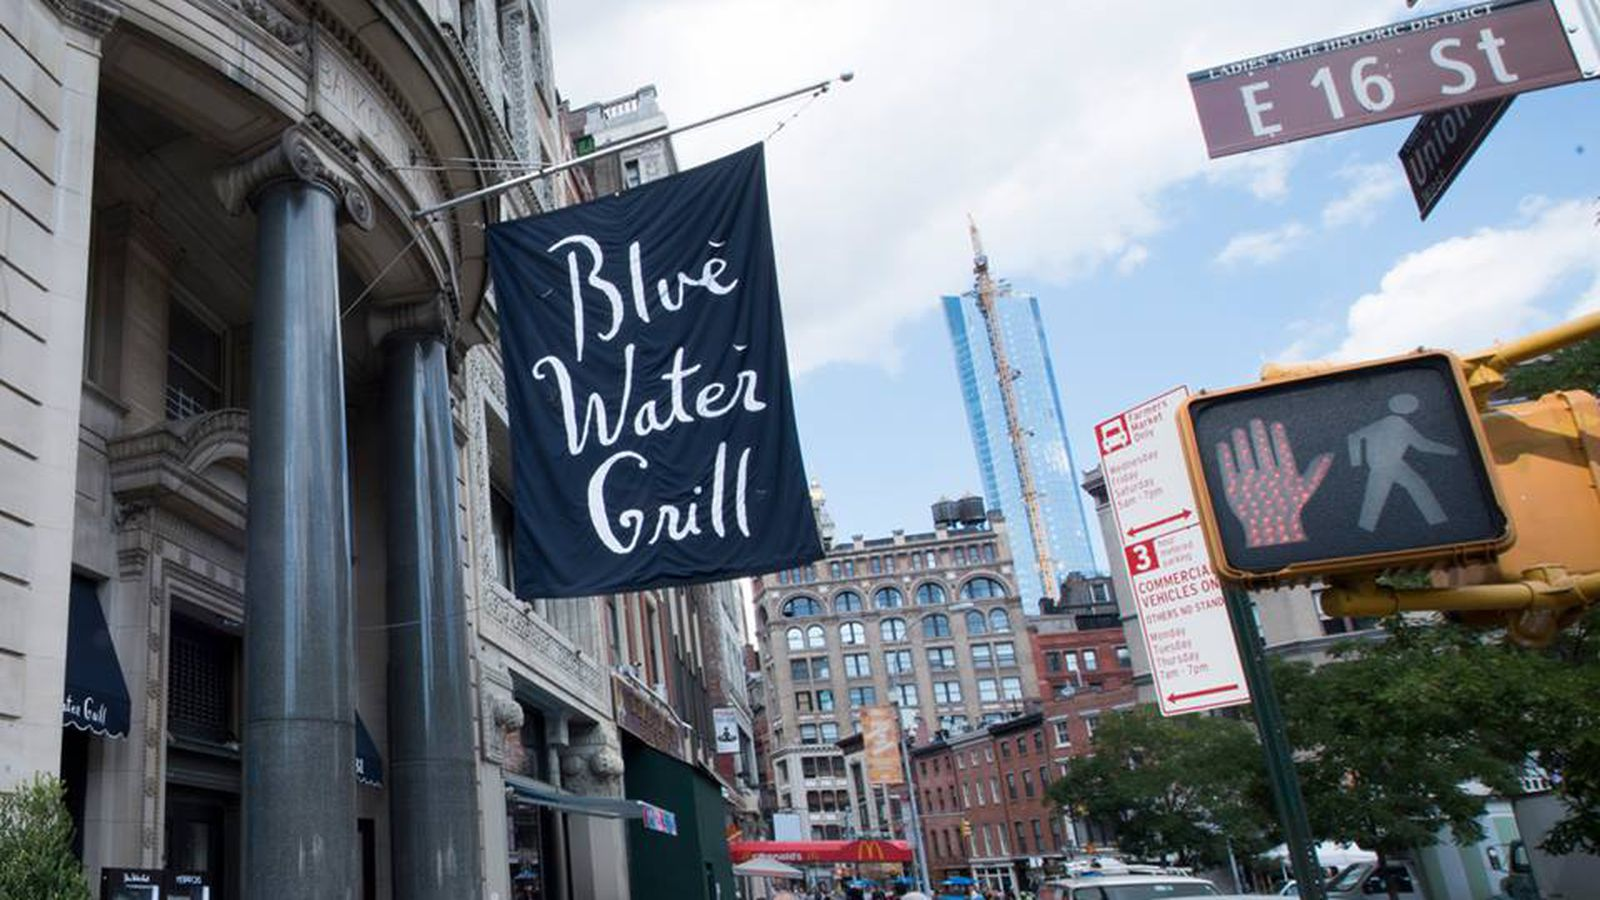 After over 20 years in Union Square, noodle shop Republic and seafood restaurant Blue Water Grill will both close in the next year. The culprit is outrageously high rent, with Blue Water Grill facing $2 million-plus annually, Bloomberg reports.